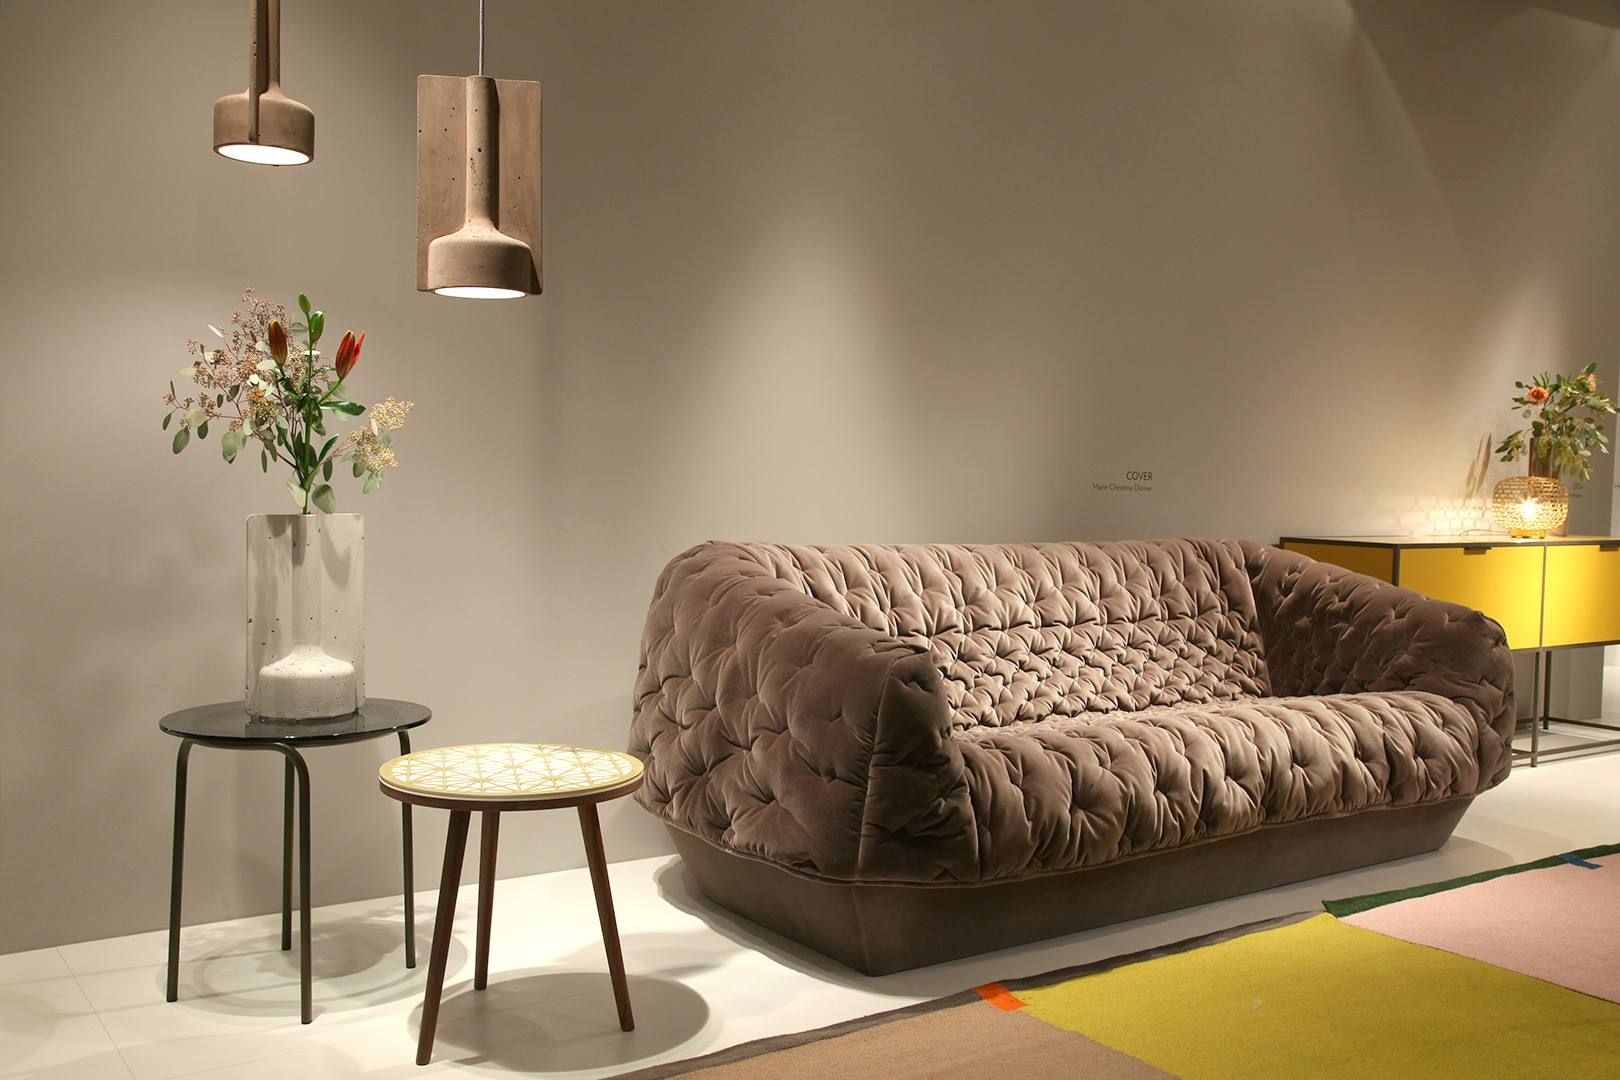 ligne roset at imm cologne 2017 view highlights of ligne roset s booth from the imm cologne. Black Bedroom Furniture Sets. Home Design Ideas